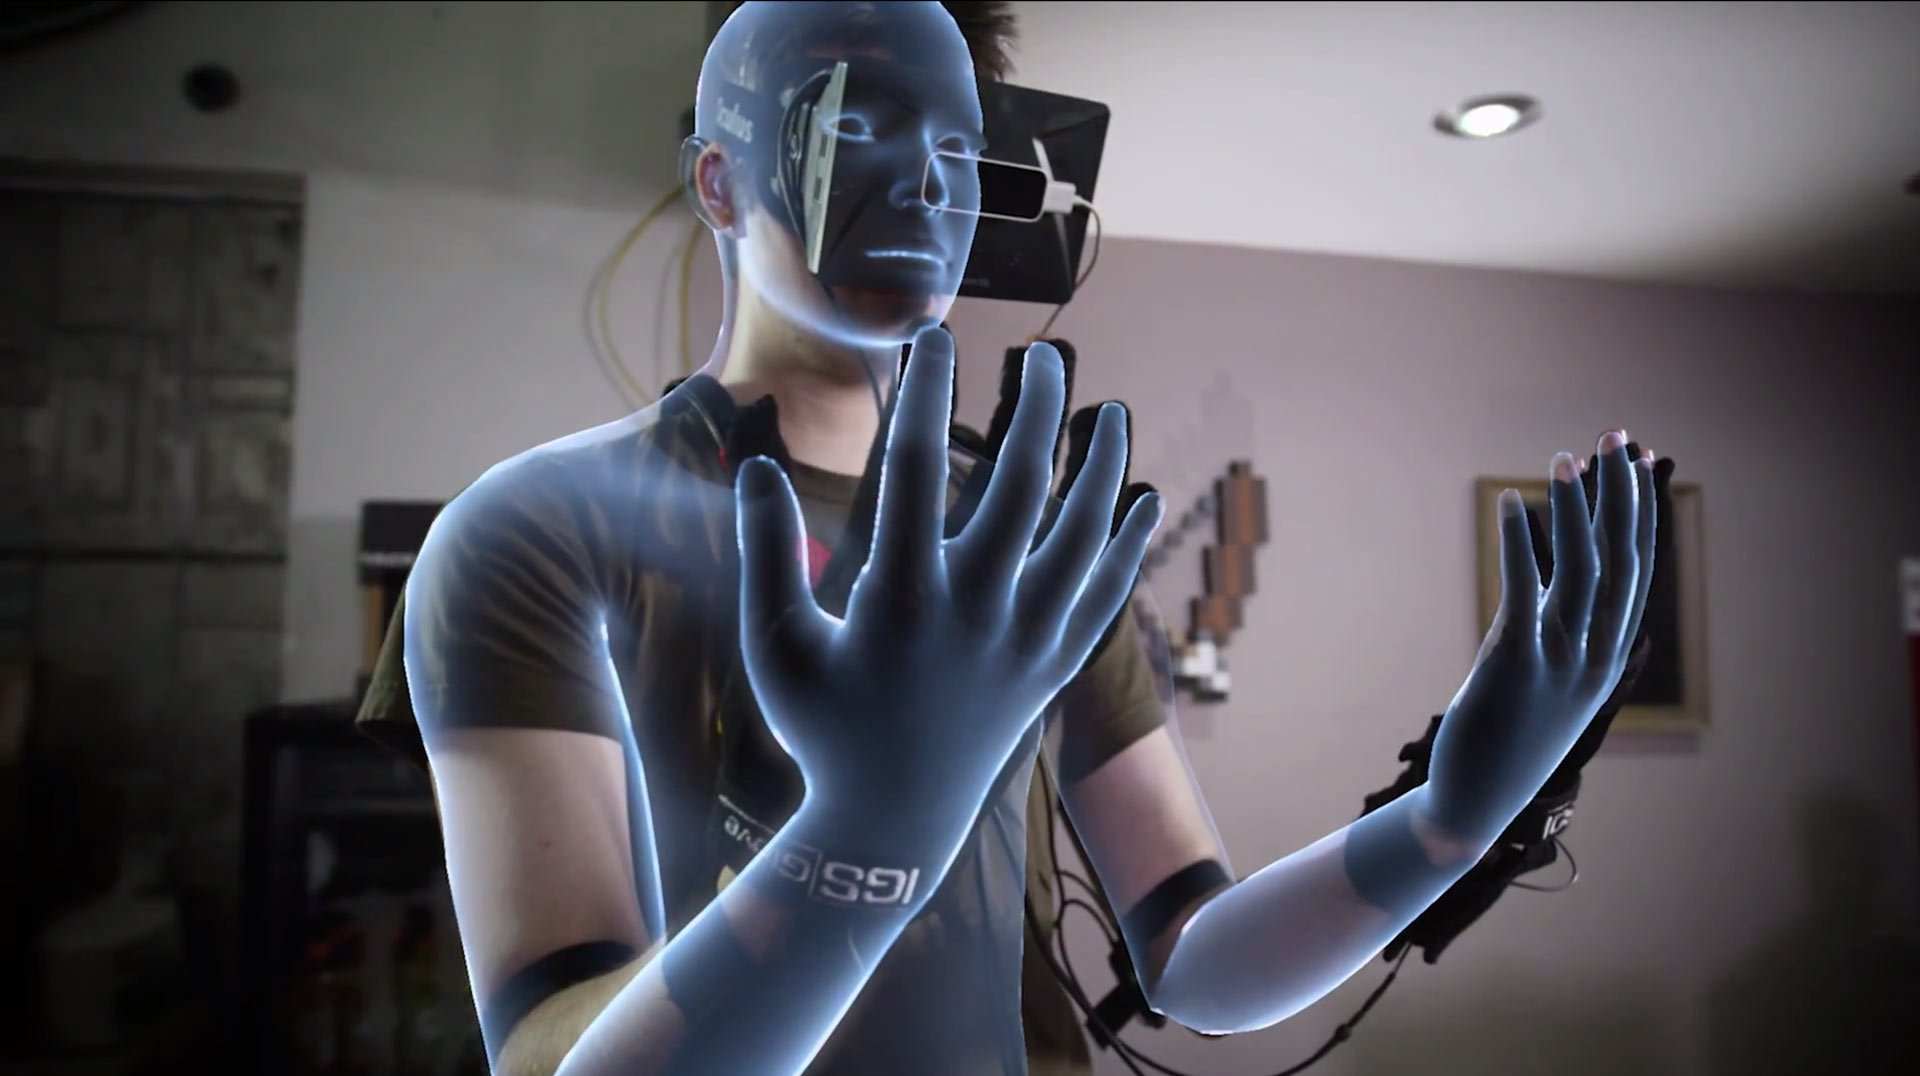 finger tracking Reach into the future of virtual and augmented reality with the most advanced hand tracking on earth, used by over 300,000 developers worldwide.